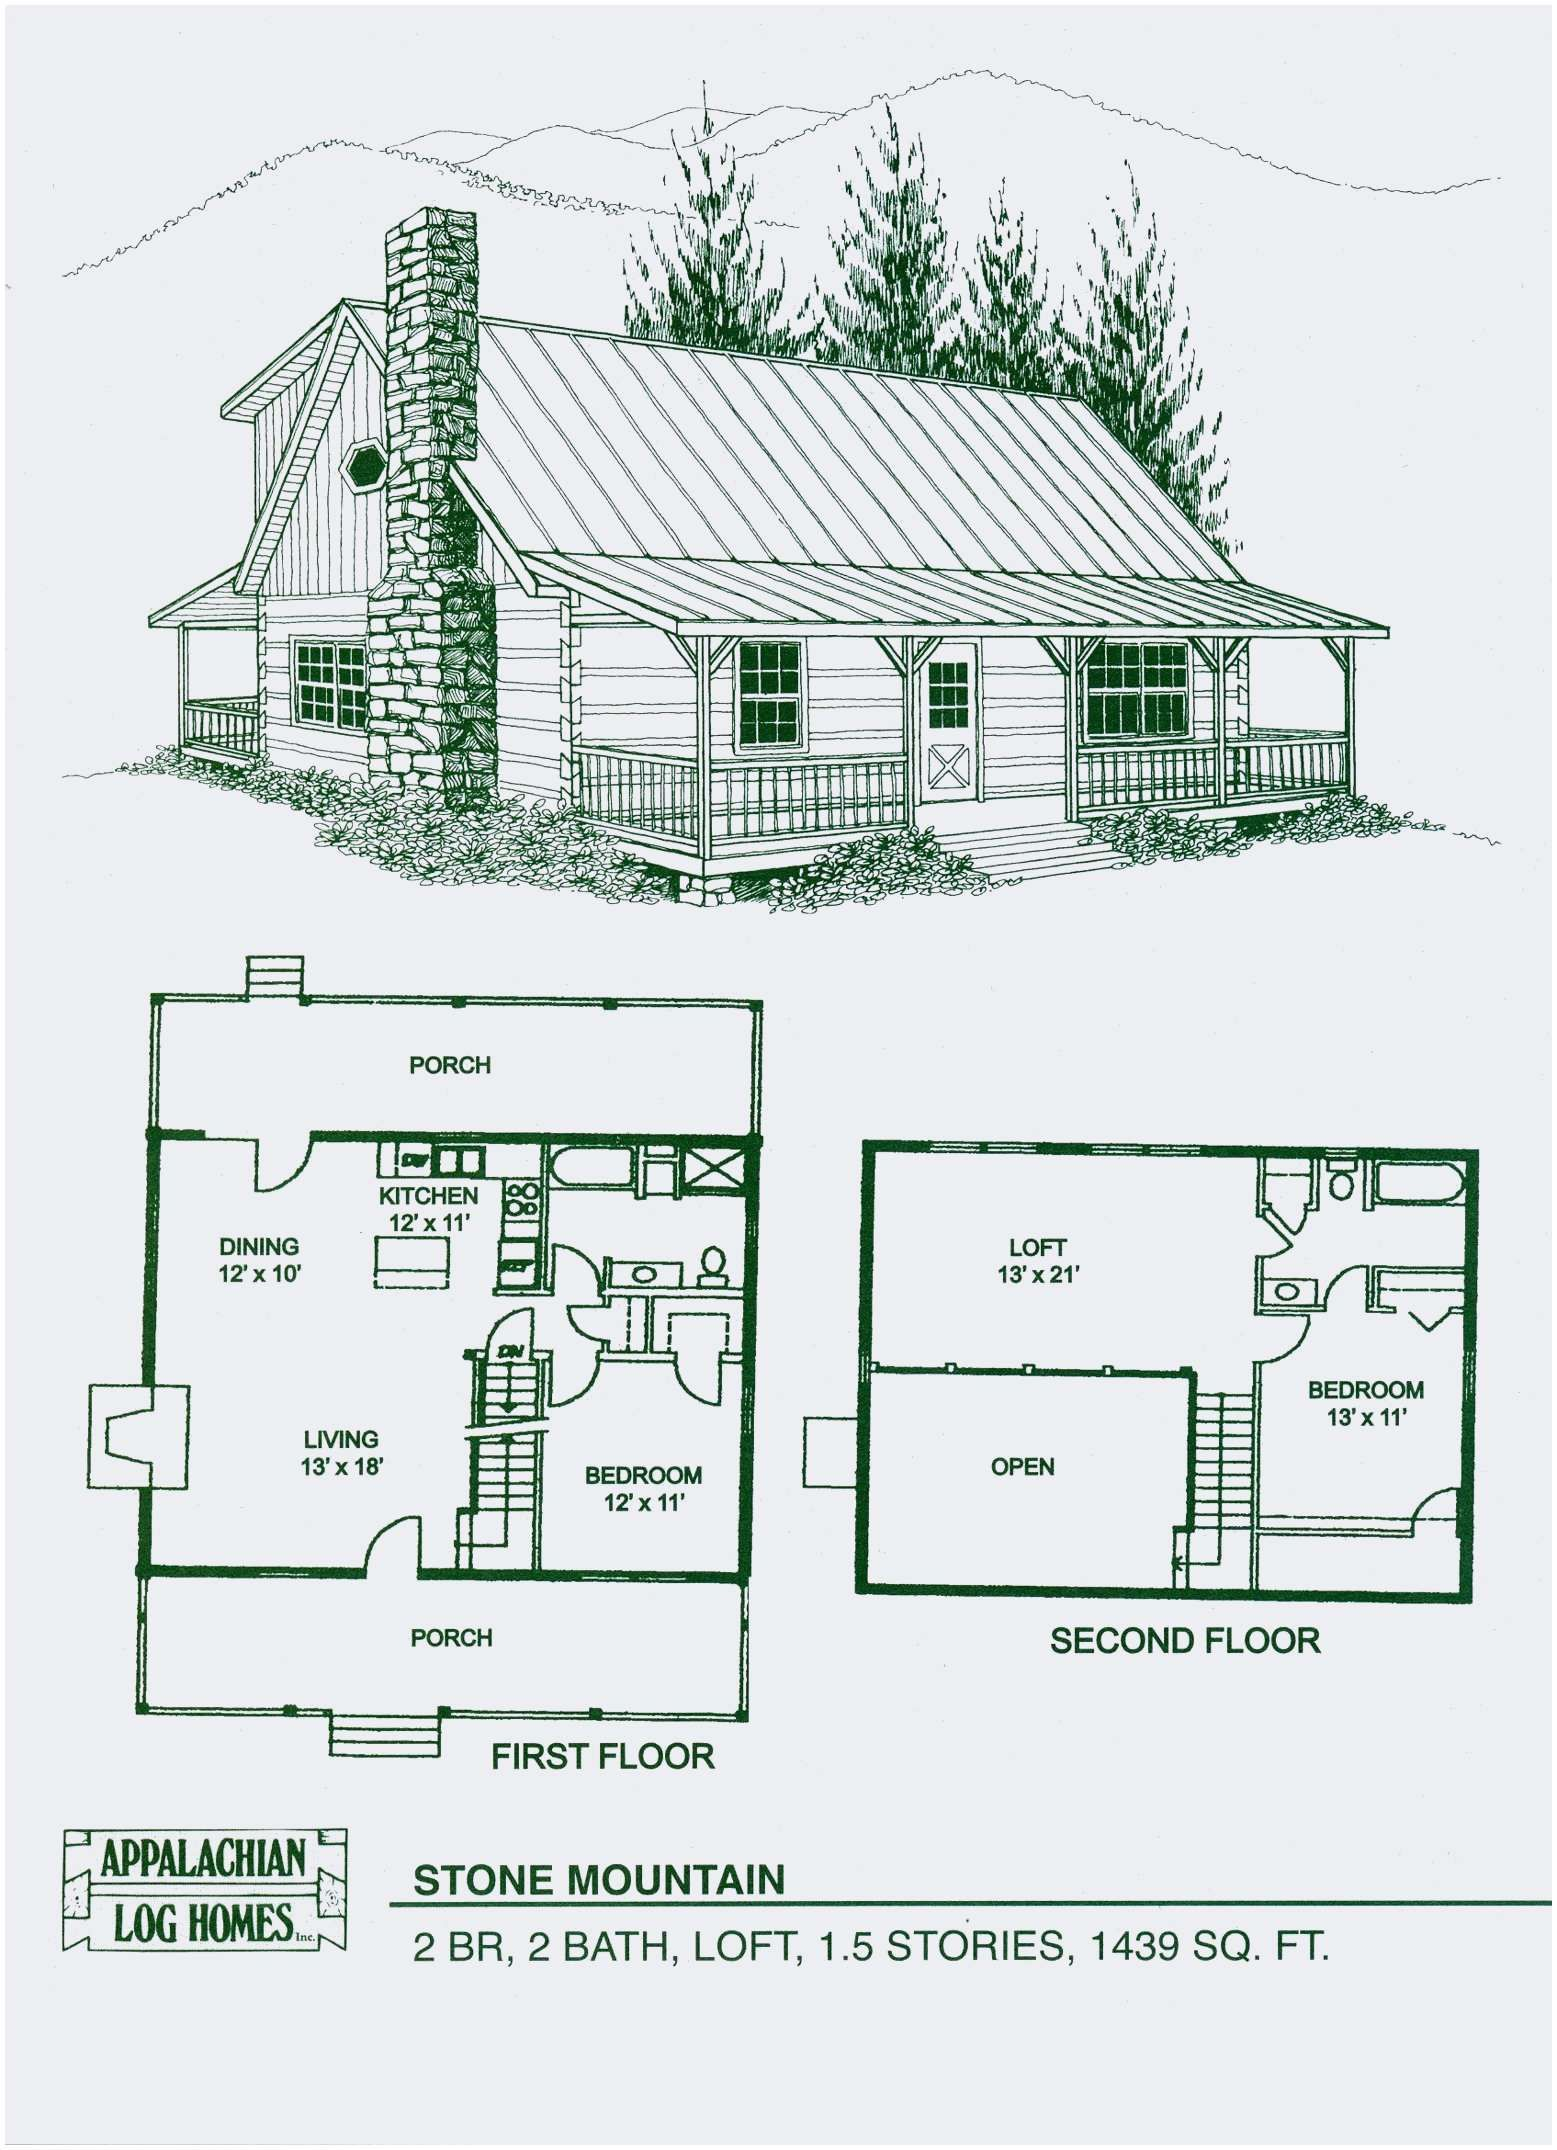 Tiny House Wheels Floor Plans With No Loft Luxury Small House Open Floor Plan New Cabin House Plans Log Cabin Floor Plans Log Cabin Plans